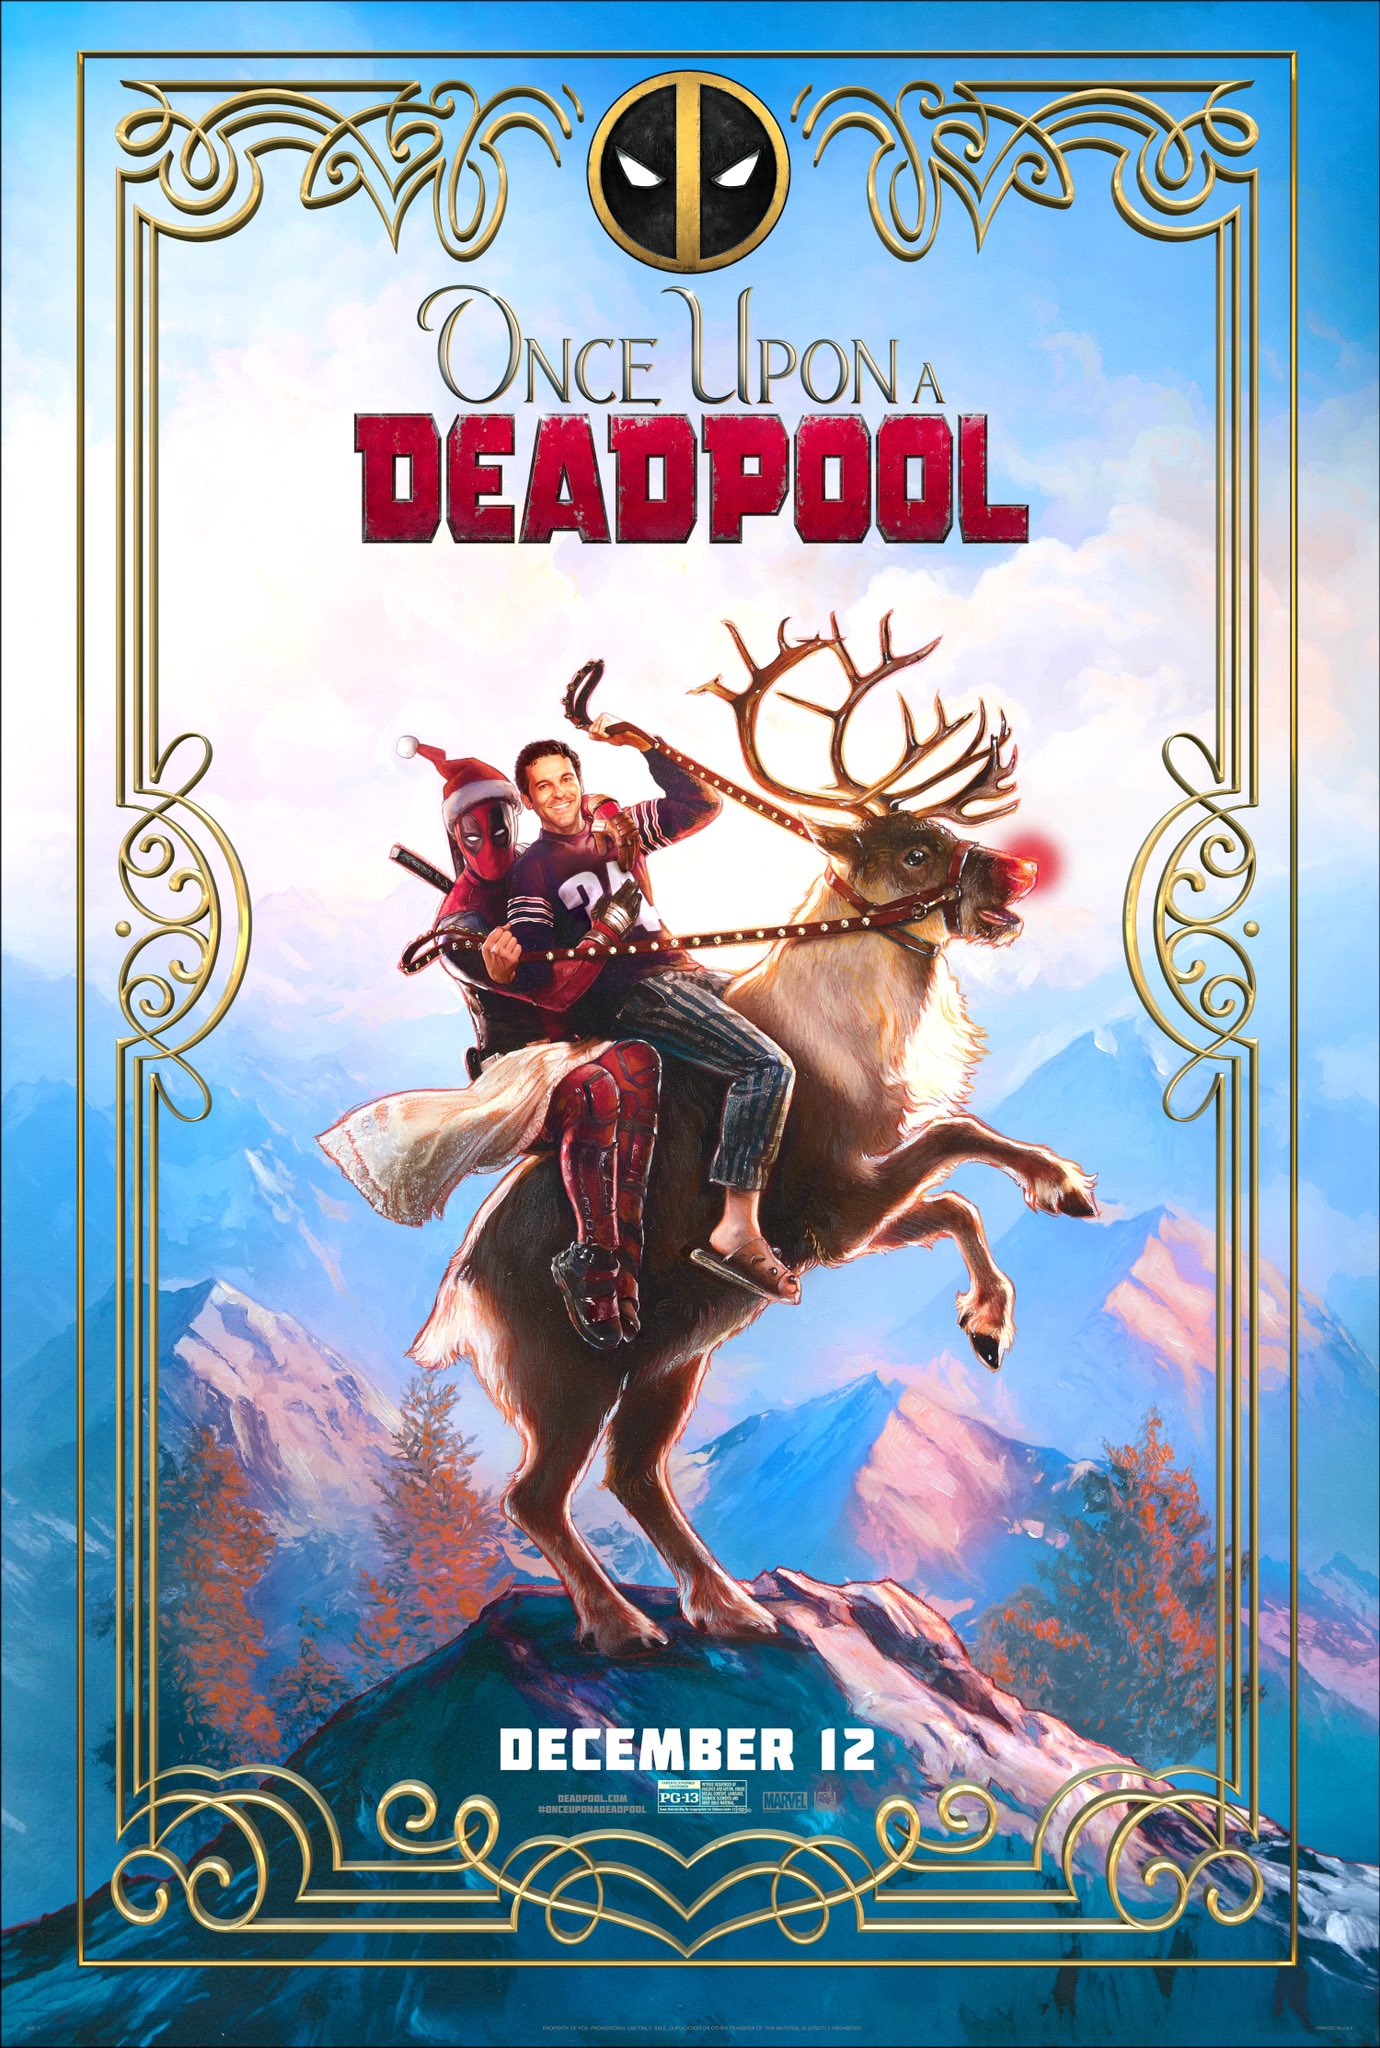 1a72aed6dc8a Deadpool 2 s PG-13 cut Once Upon a Deadpool borrows inspiration from ...